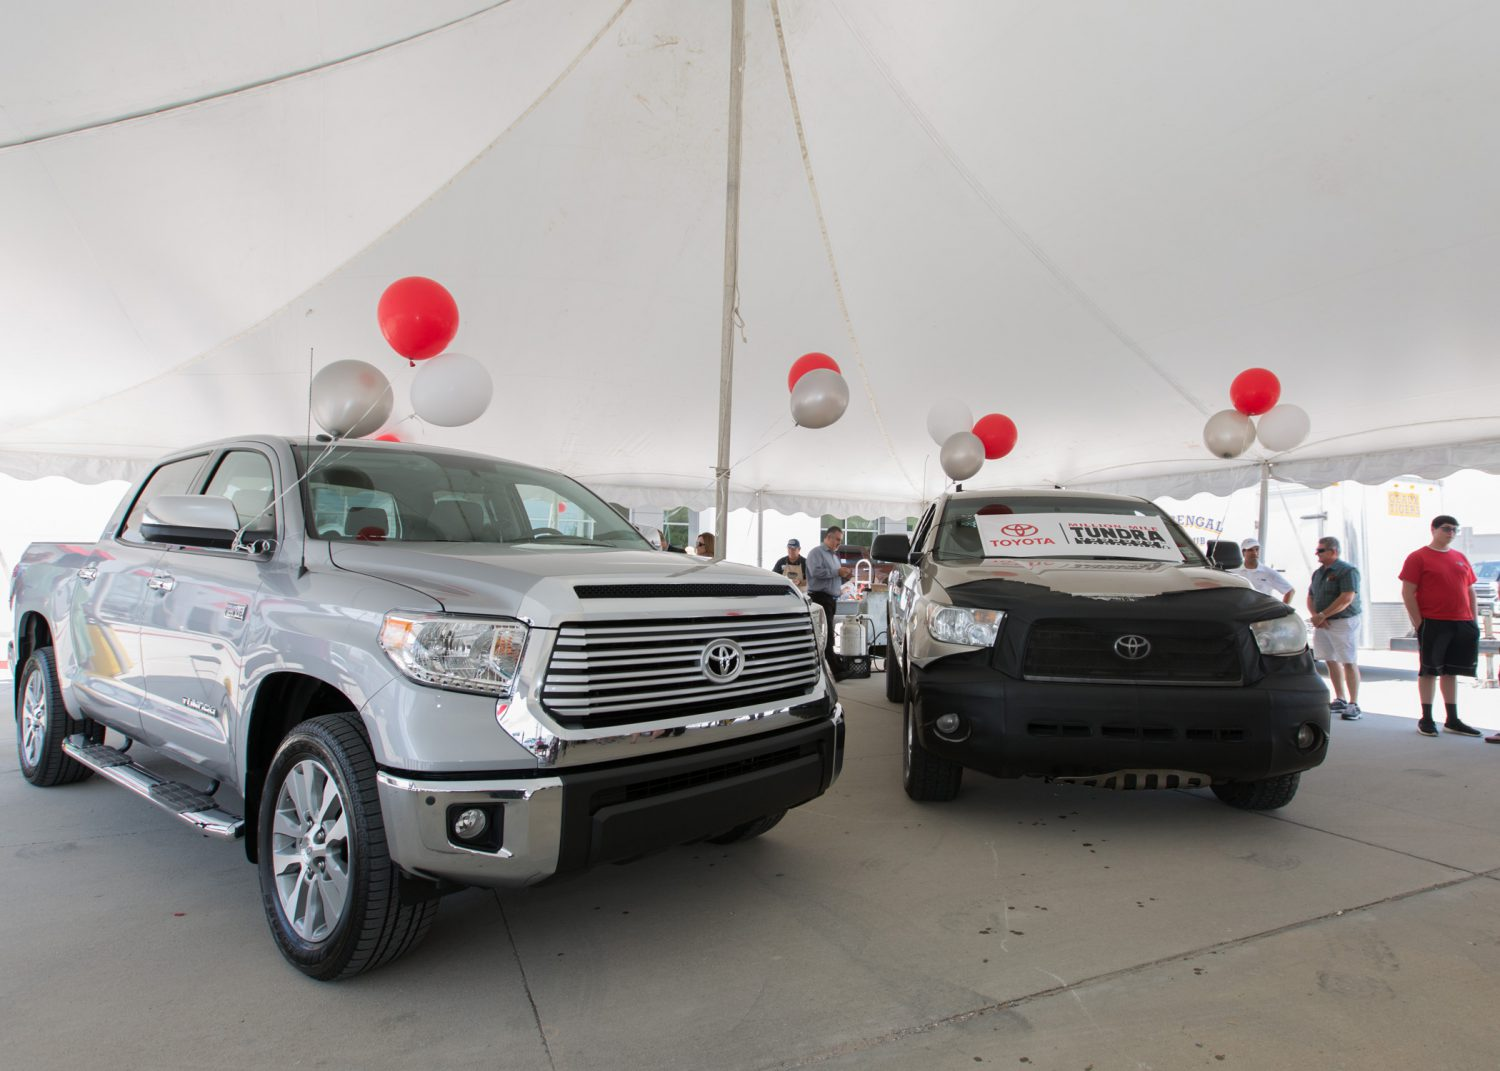 What Is a Million-Mile Toyota Tundra Worth? - Toyota USA Newsroom